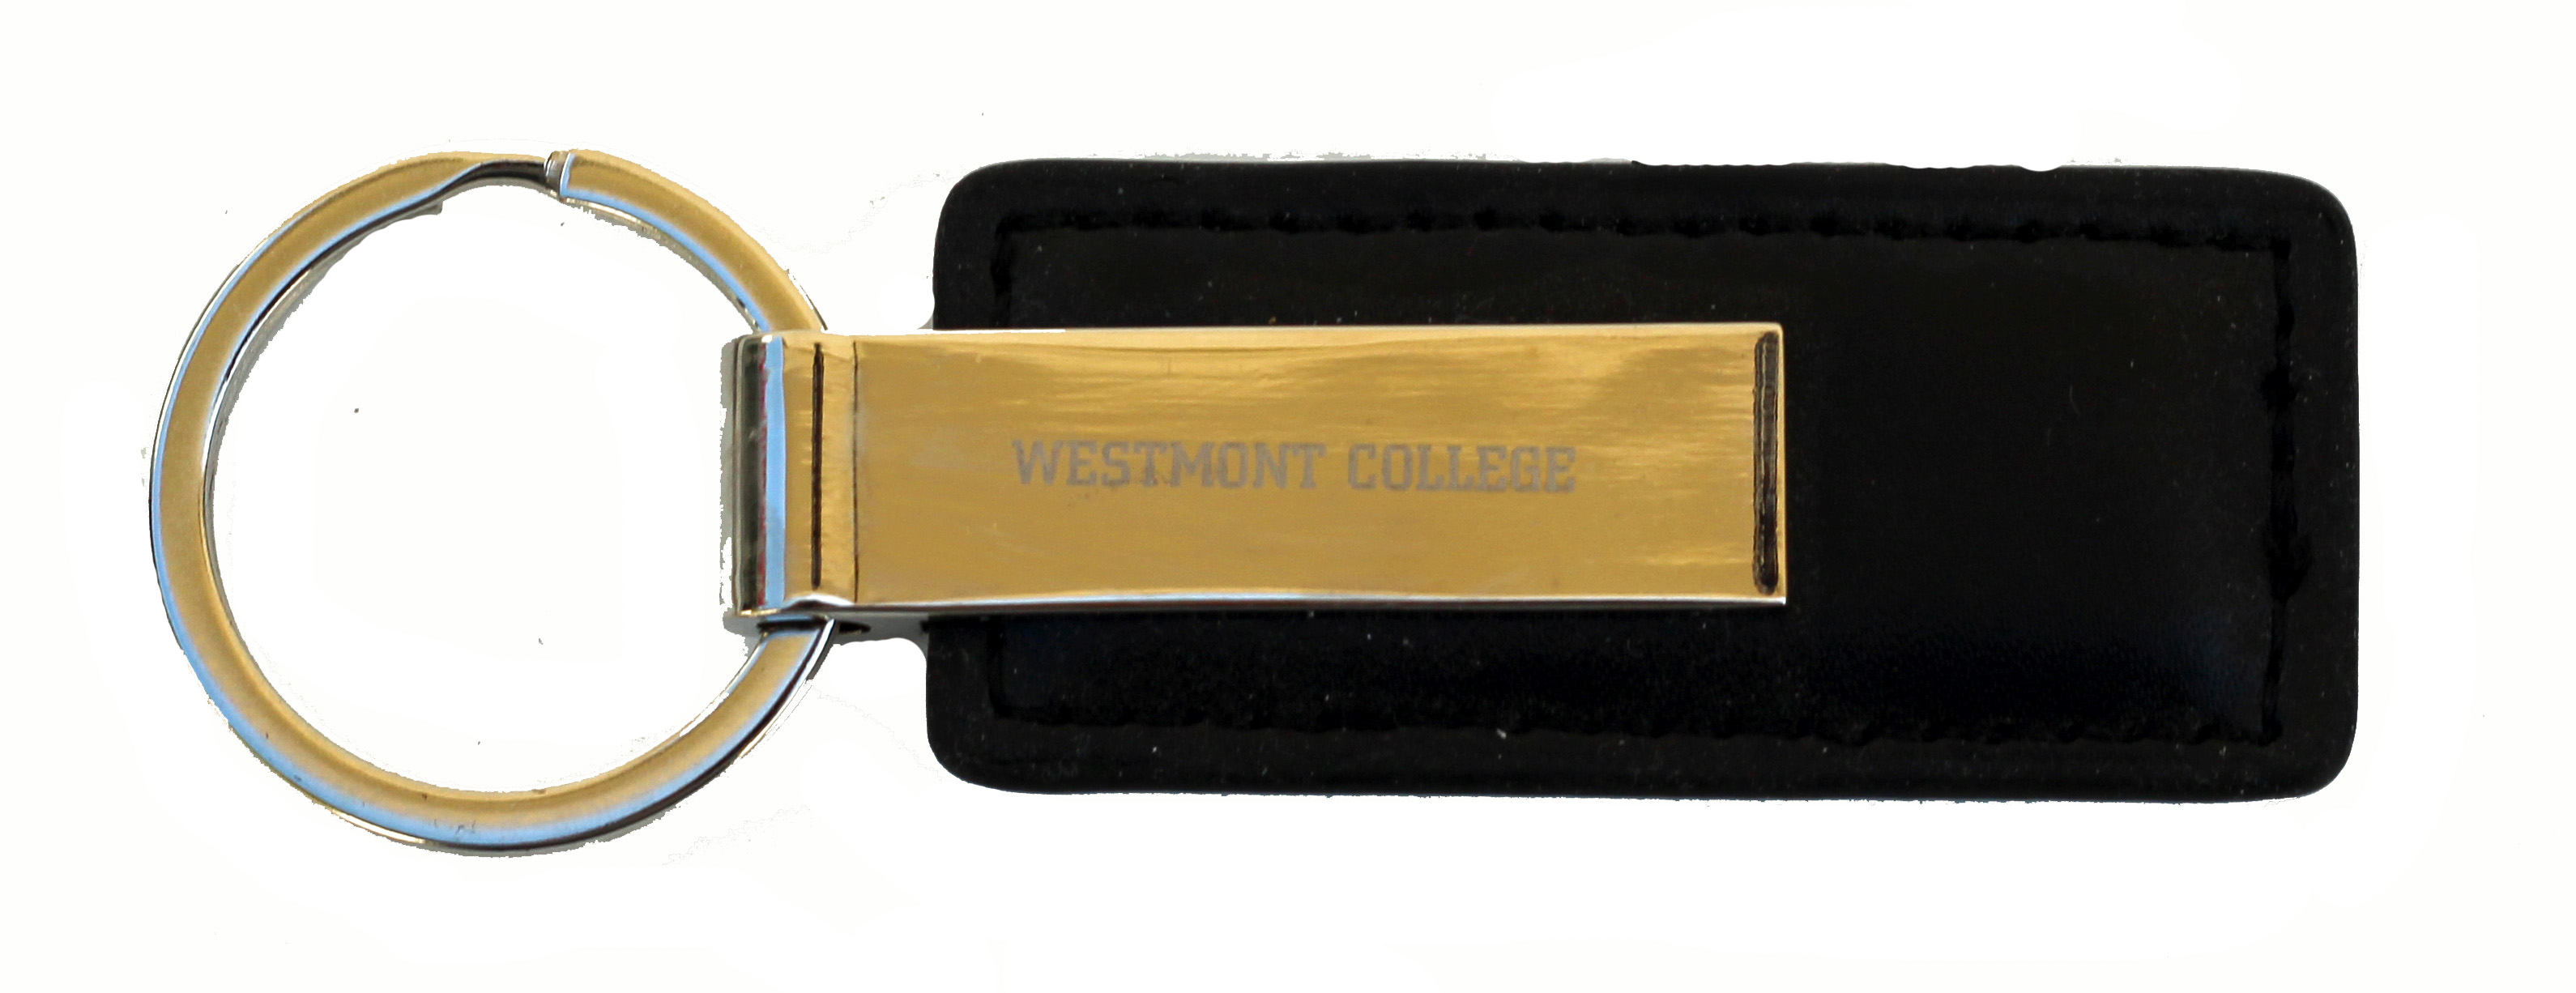 Image for the Westmont College Black Leather Keytag product